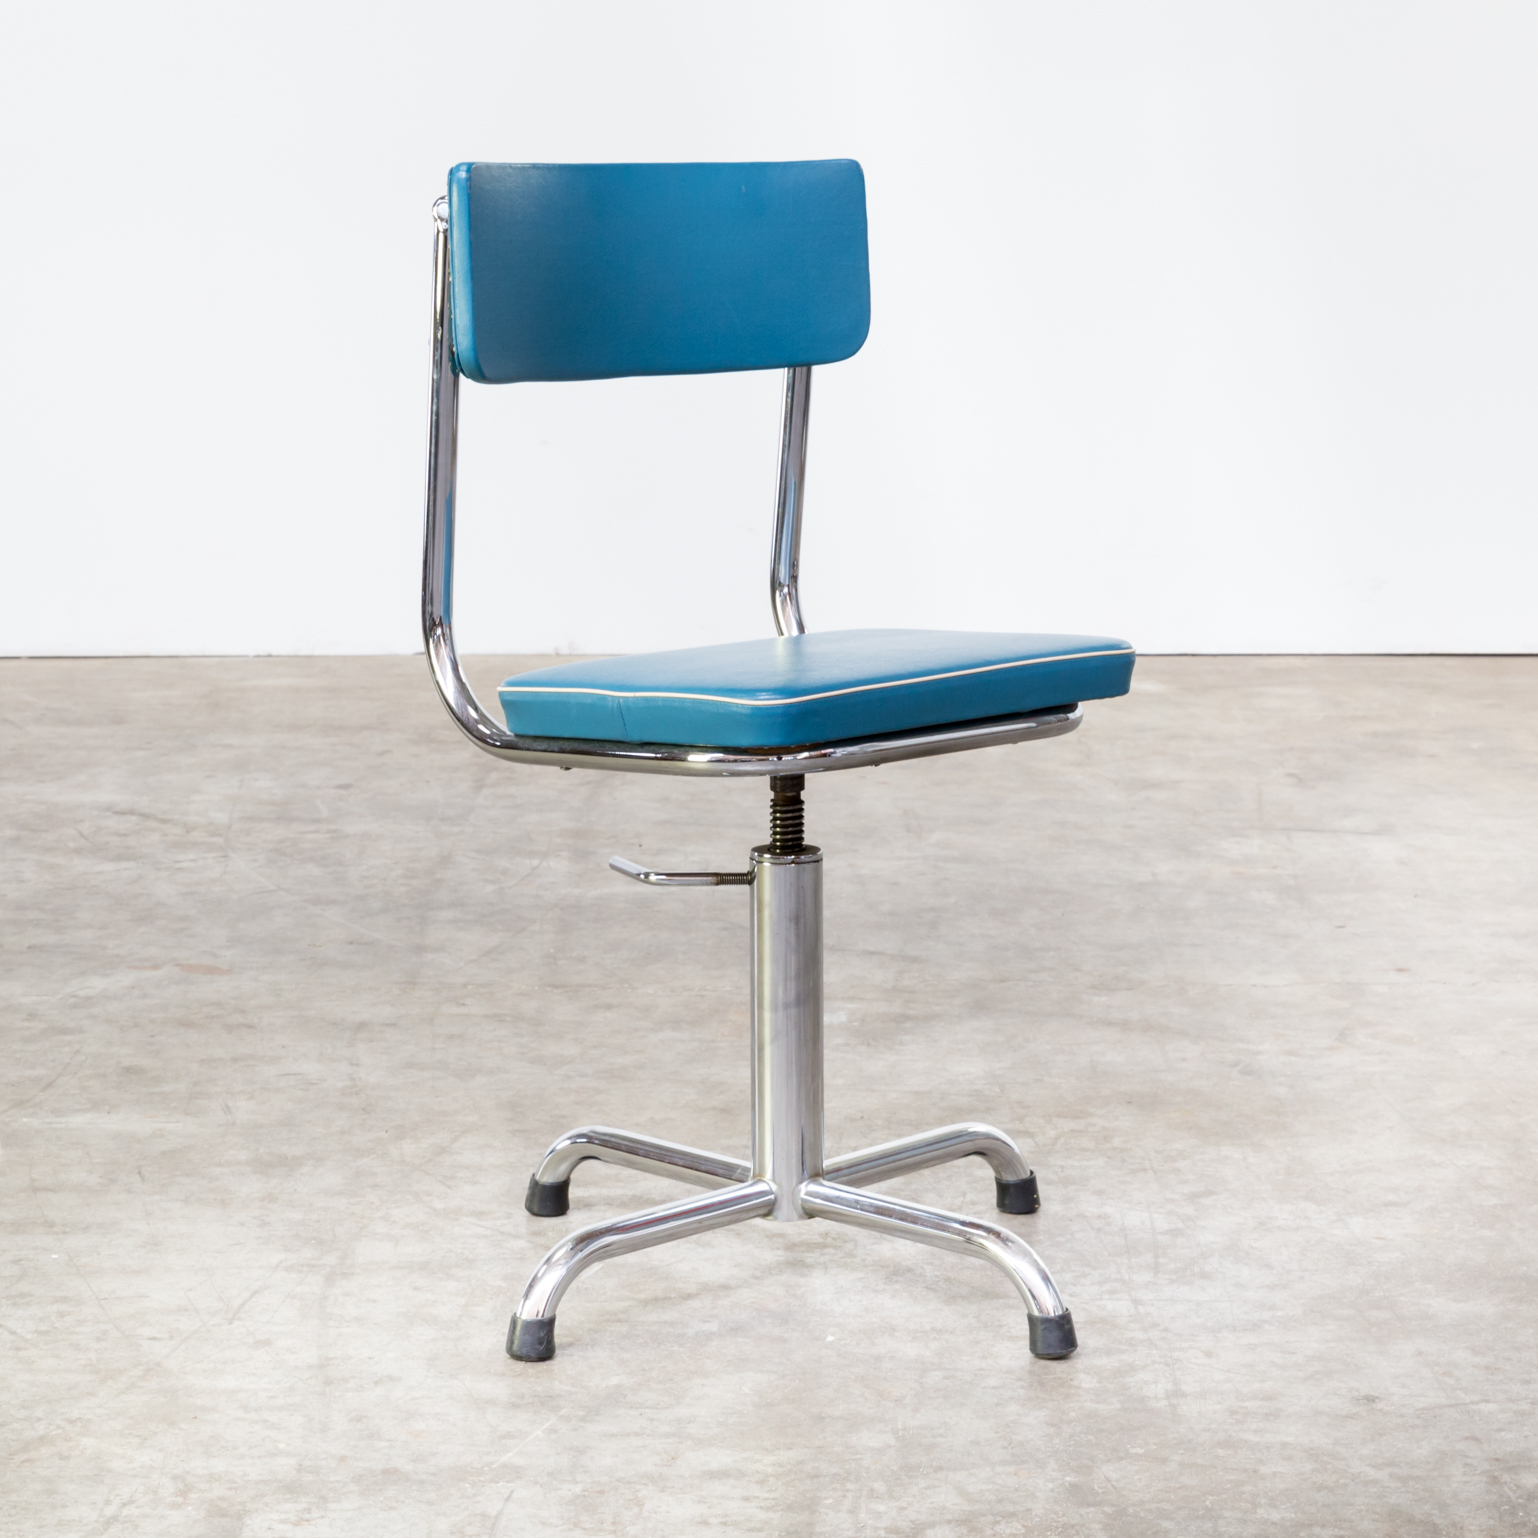 Classic Designer Chair 60s Small Office Chair Blauw Skai With White Trim Barbmama